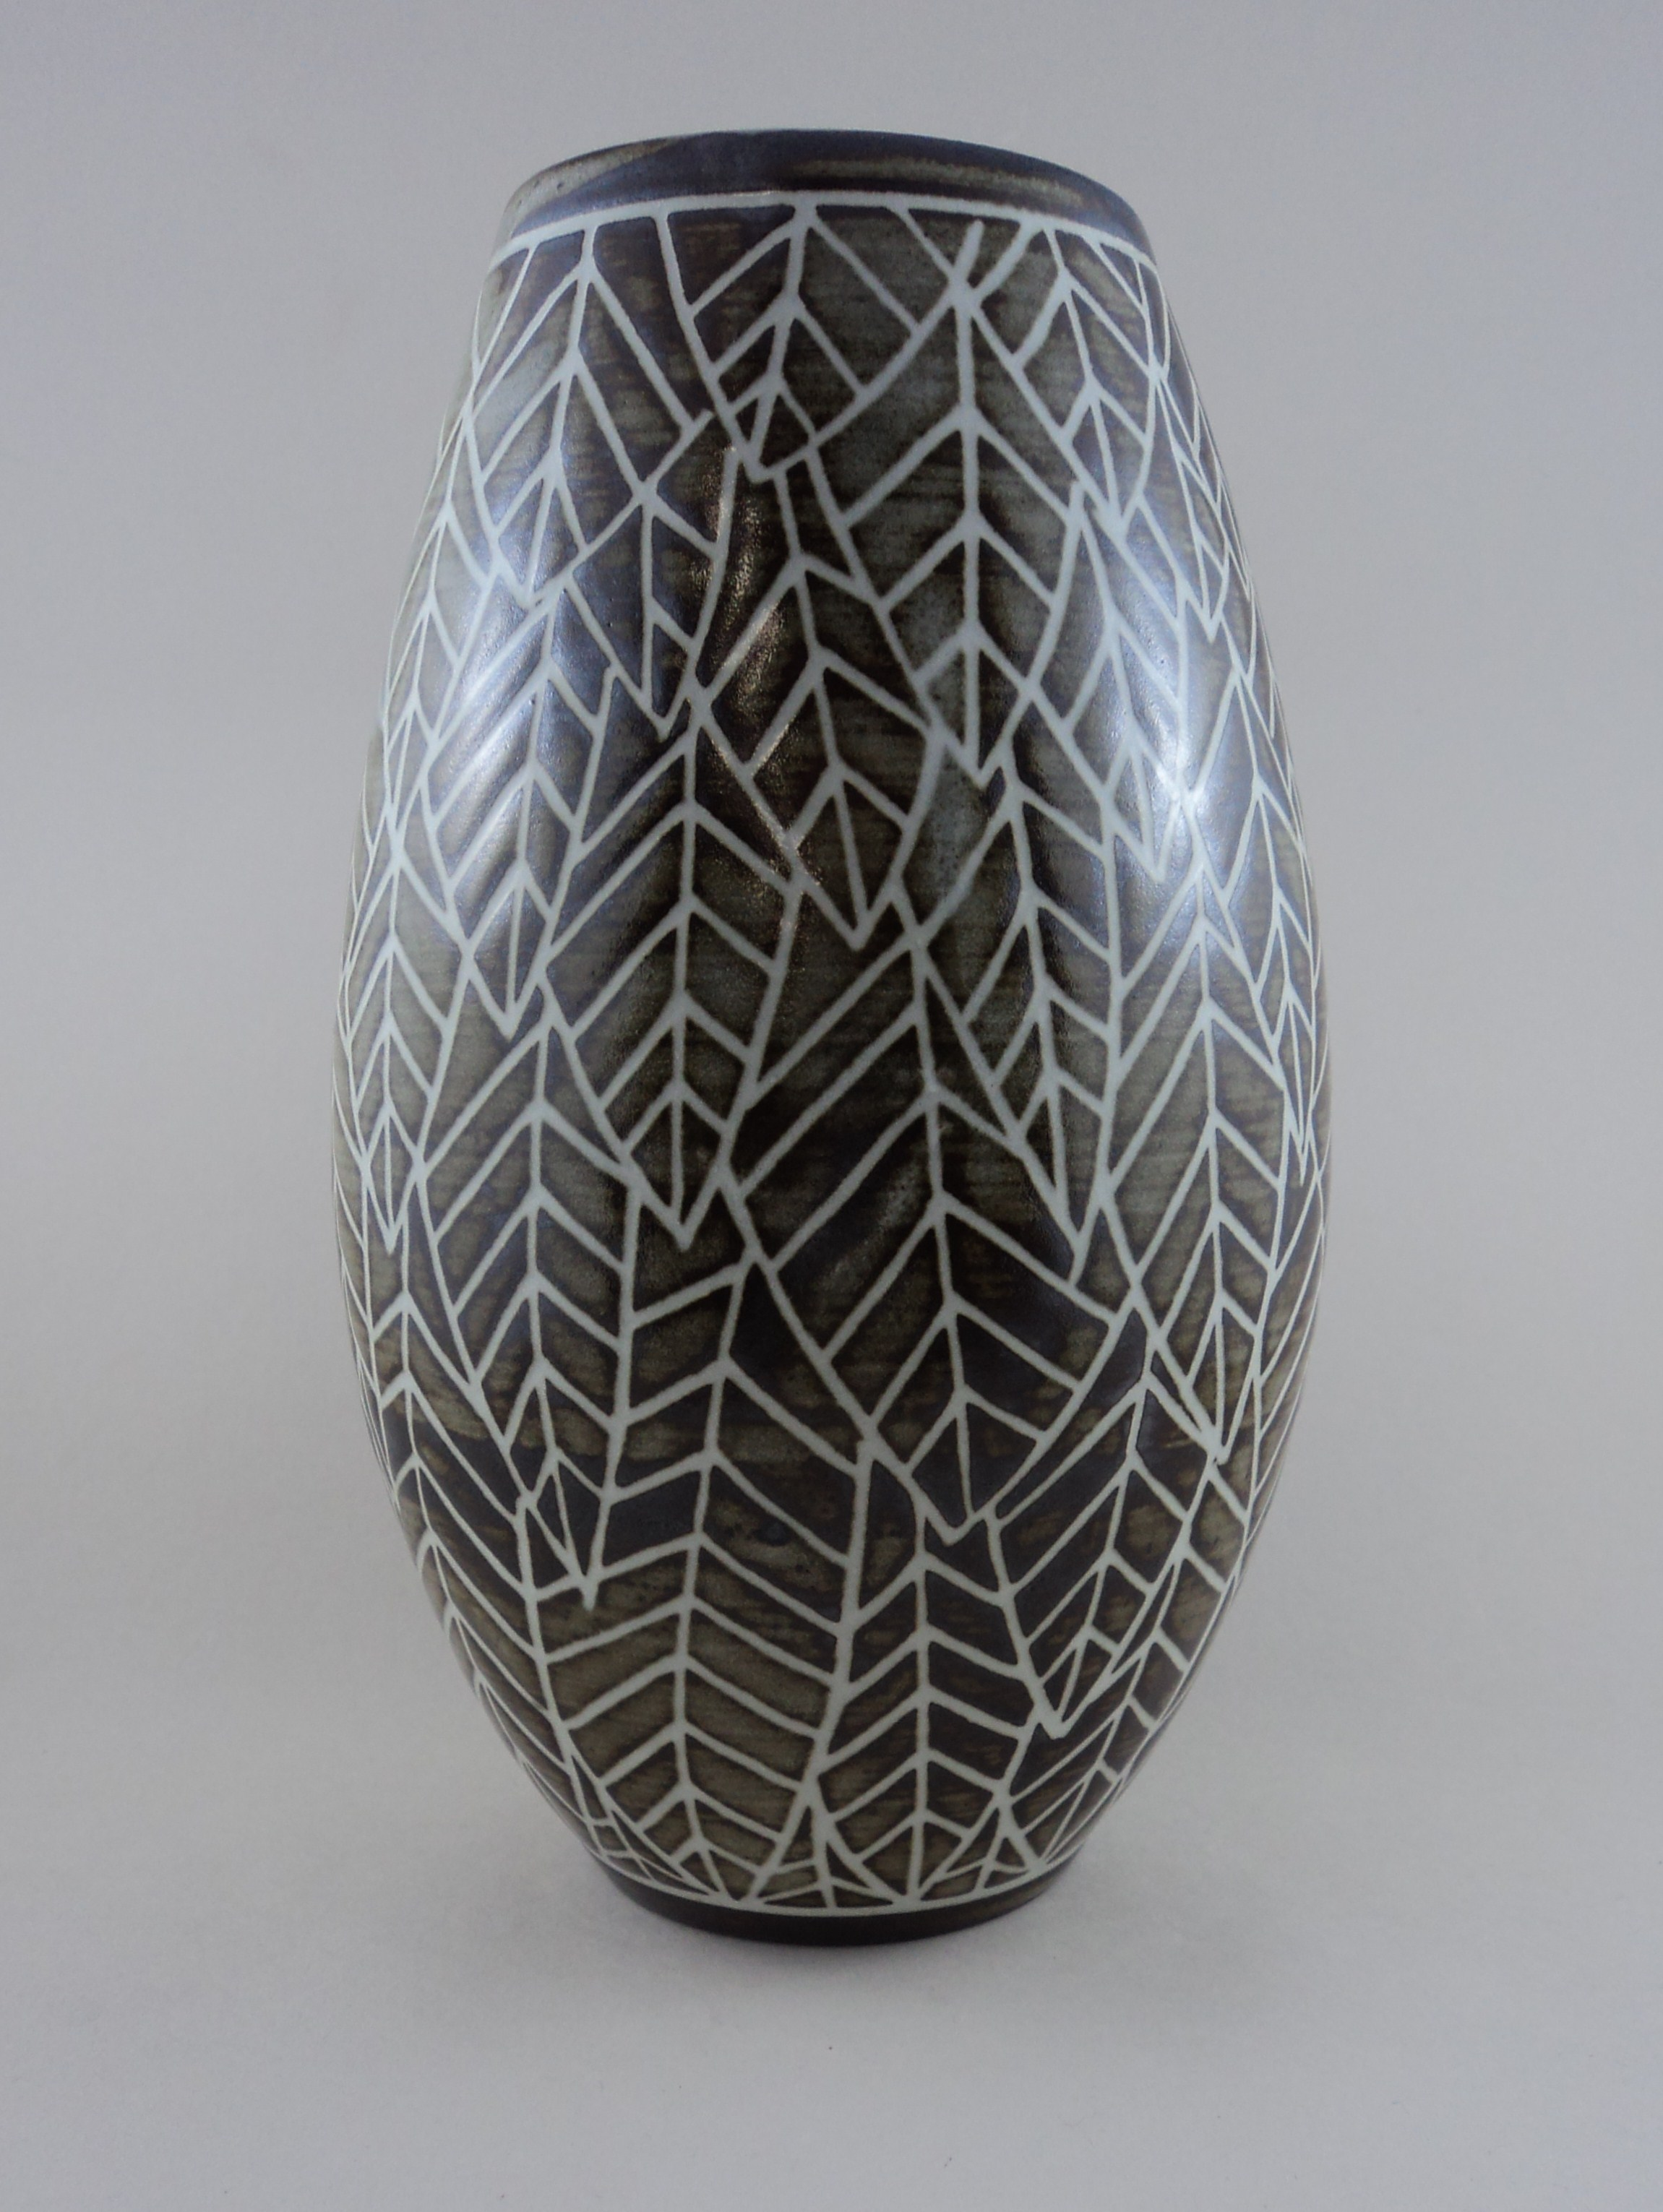 Vase with carved leaf pattern.